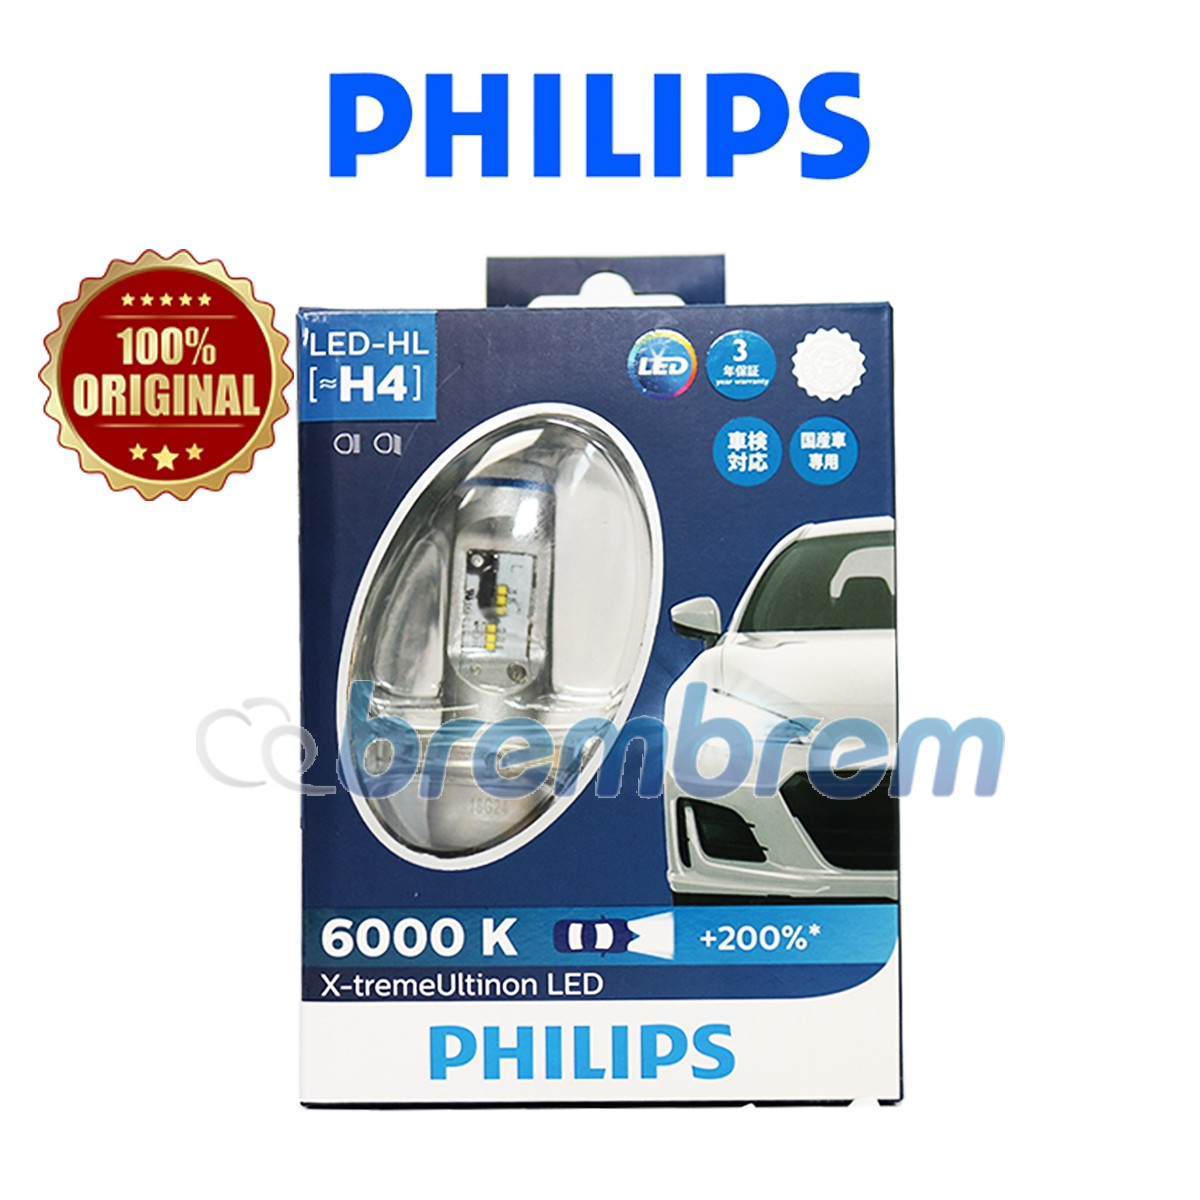 PHILIPS XTREME ULTINON H4 (6000K) - LAMPU LED